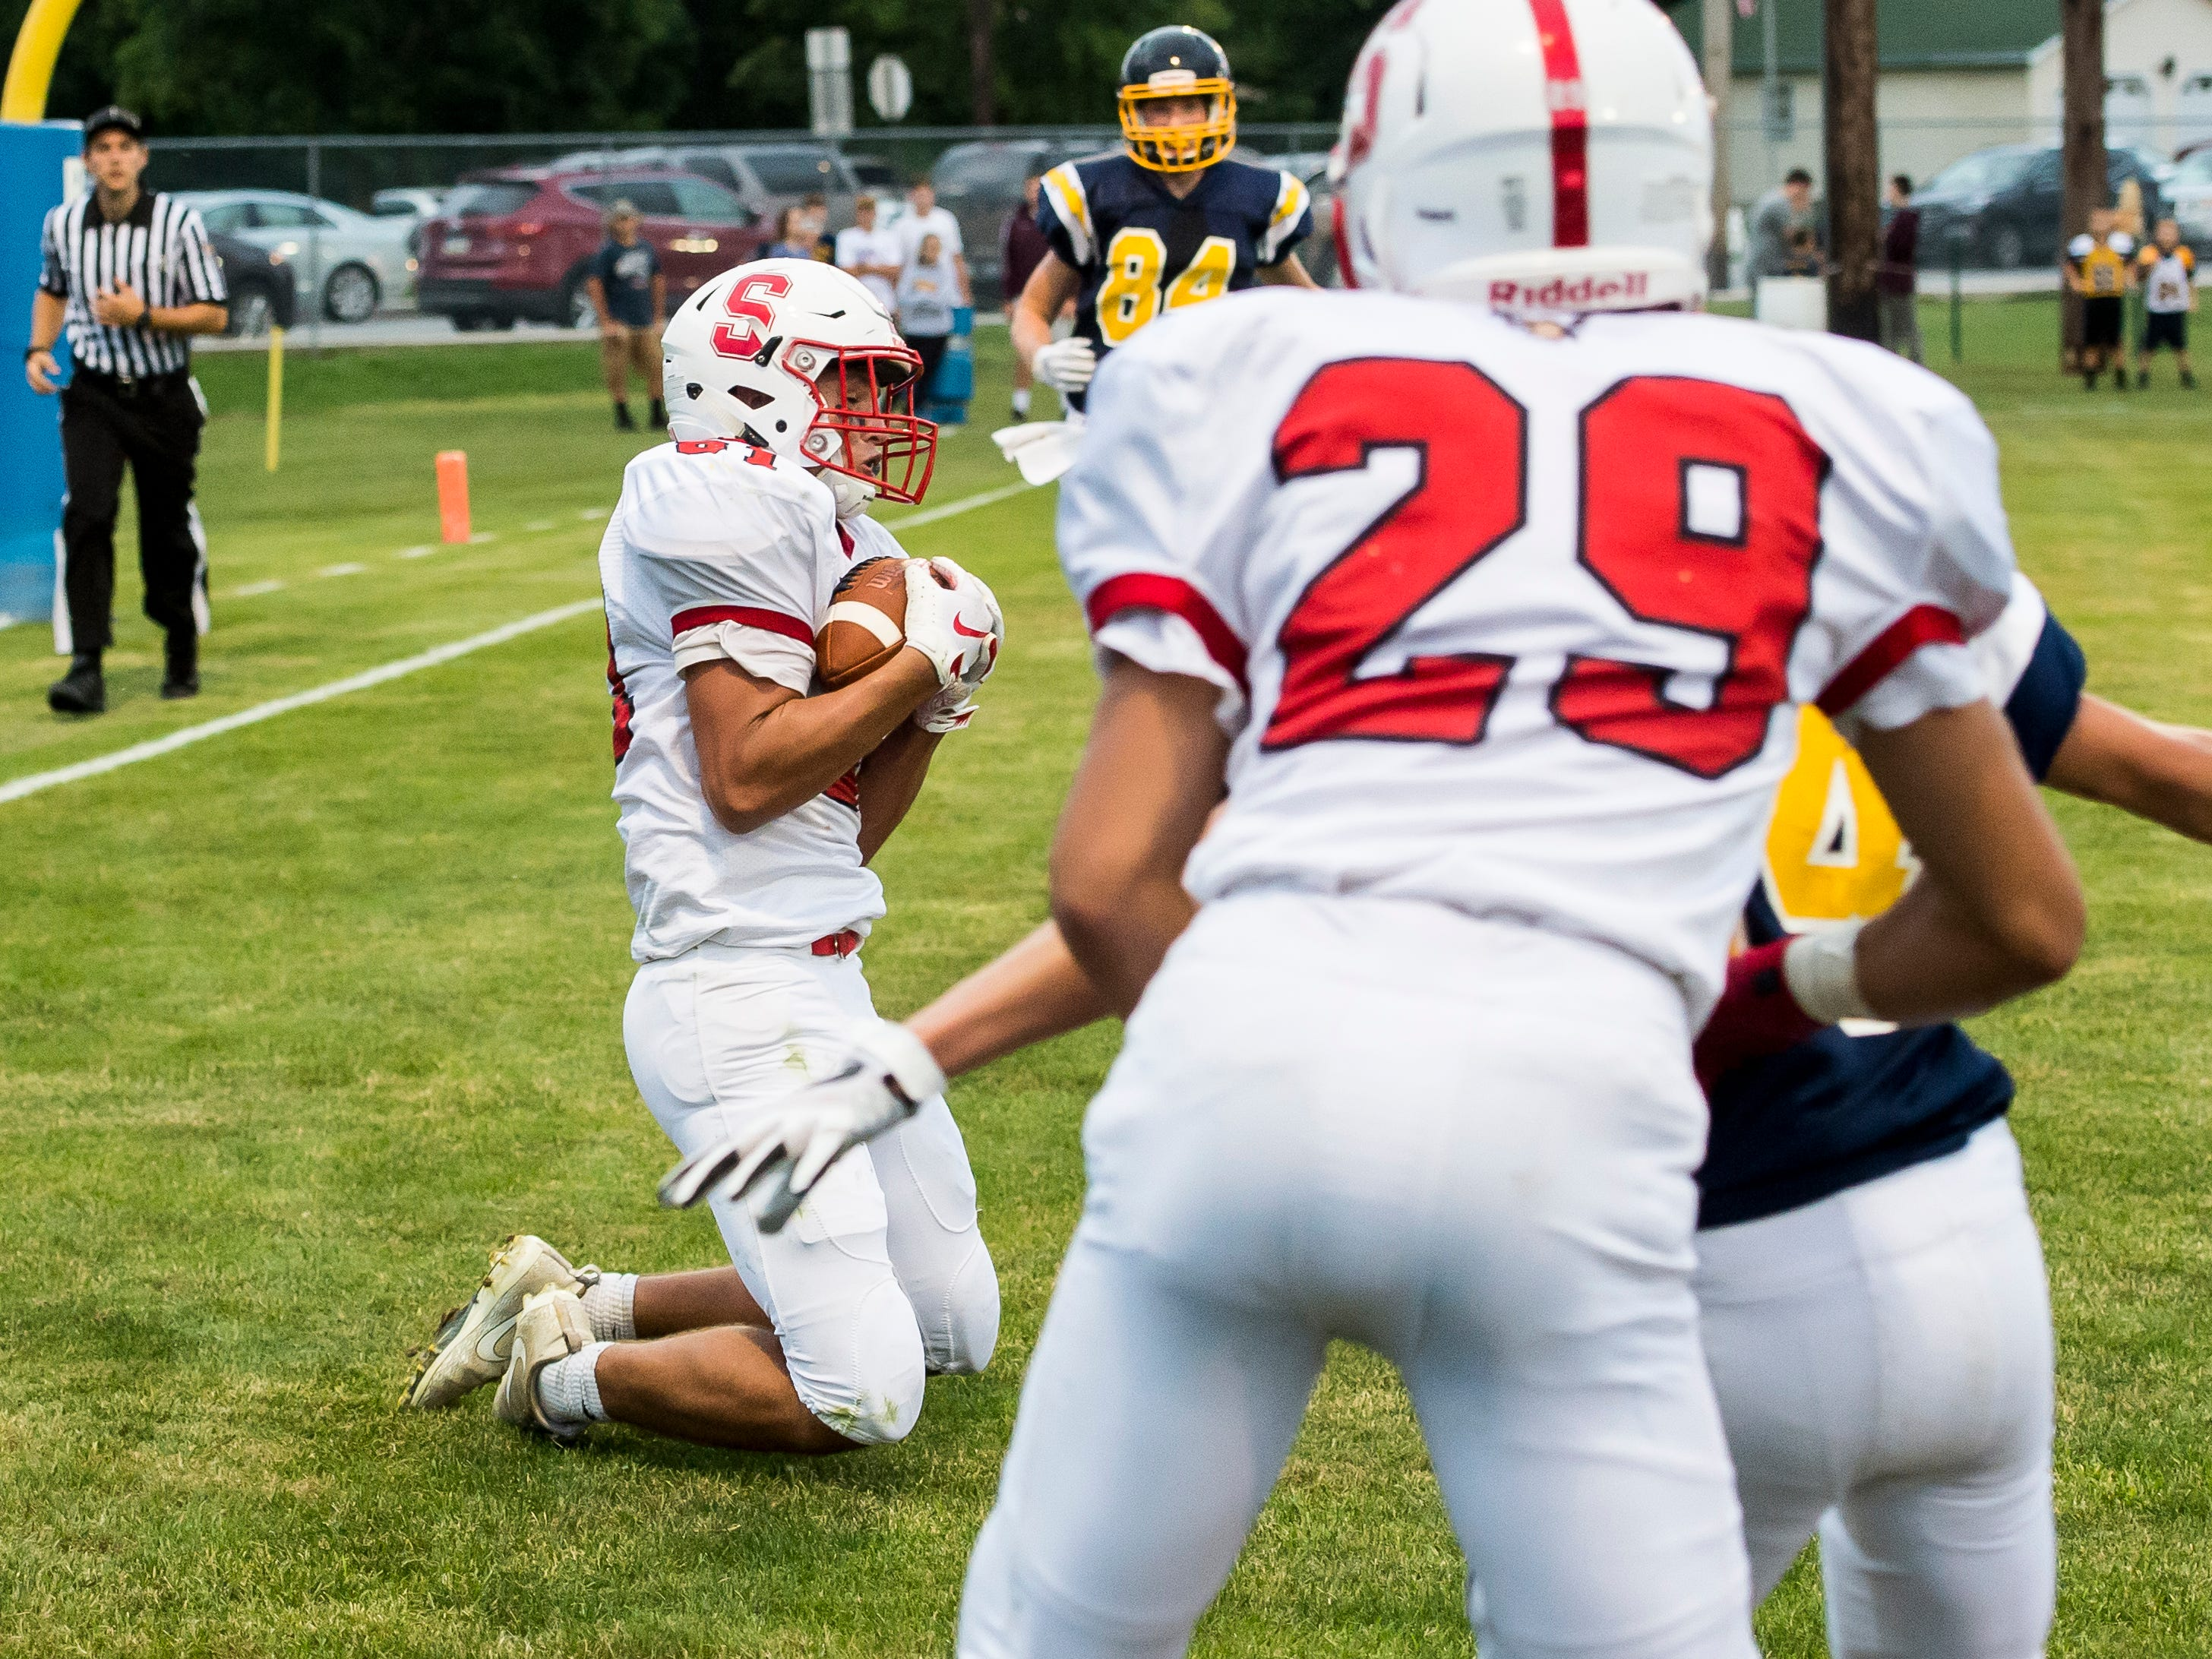 Susquehannock's Zach Green holds onto a pass to score a touchdown against Littlestown on Friday, August 31, 2018. The Warriors fell to the Bolts 29-14.